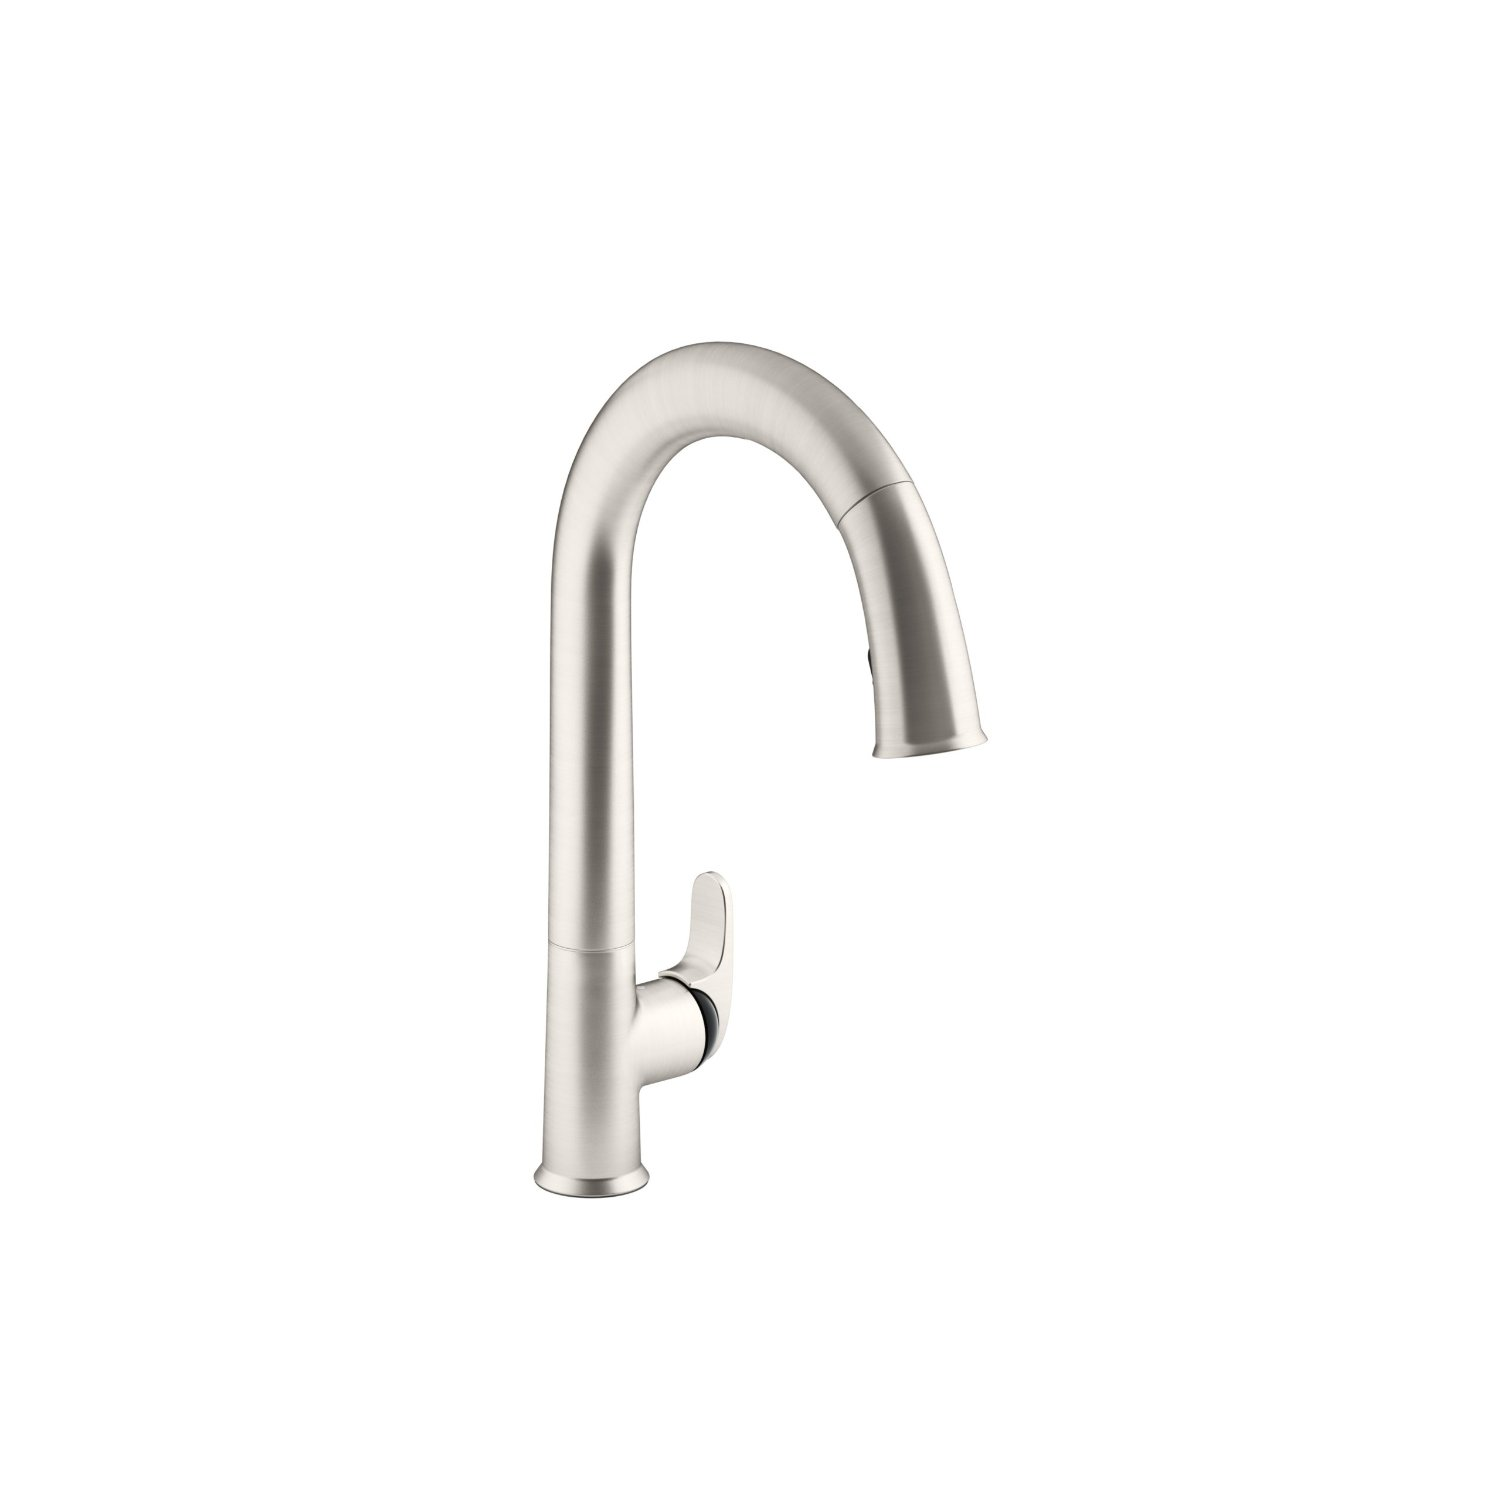 Moen 7594 Arbor With Motionsense Faucet Review